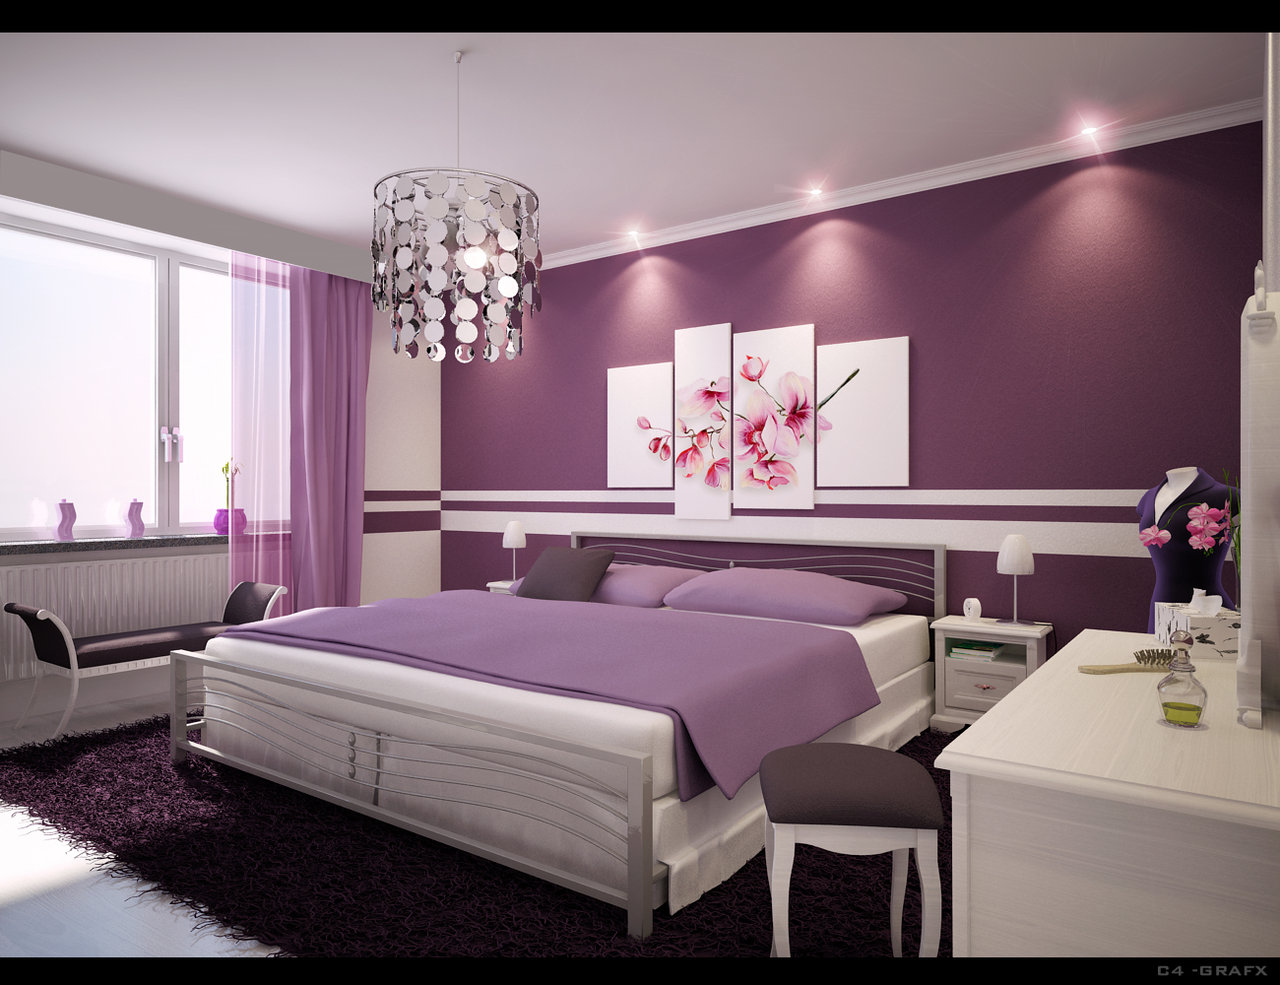 Great Bedroom Interior Design Ideas 1280 x 985 · 201 kB · jpeg